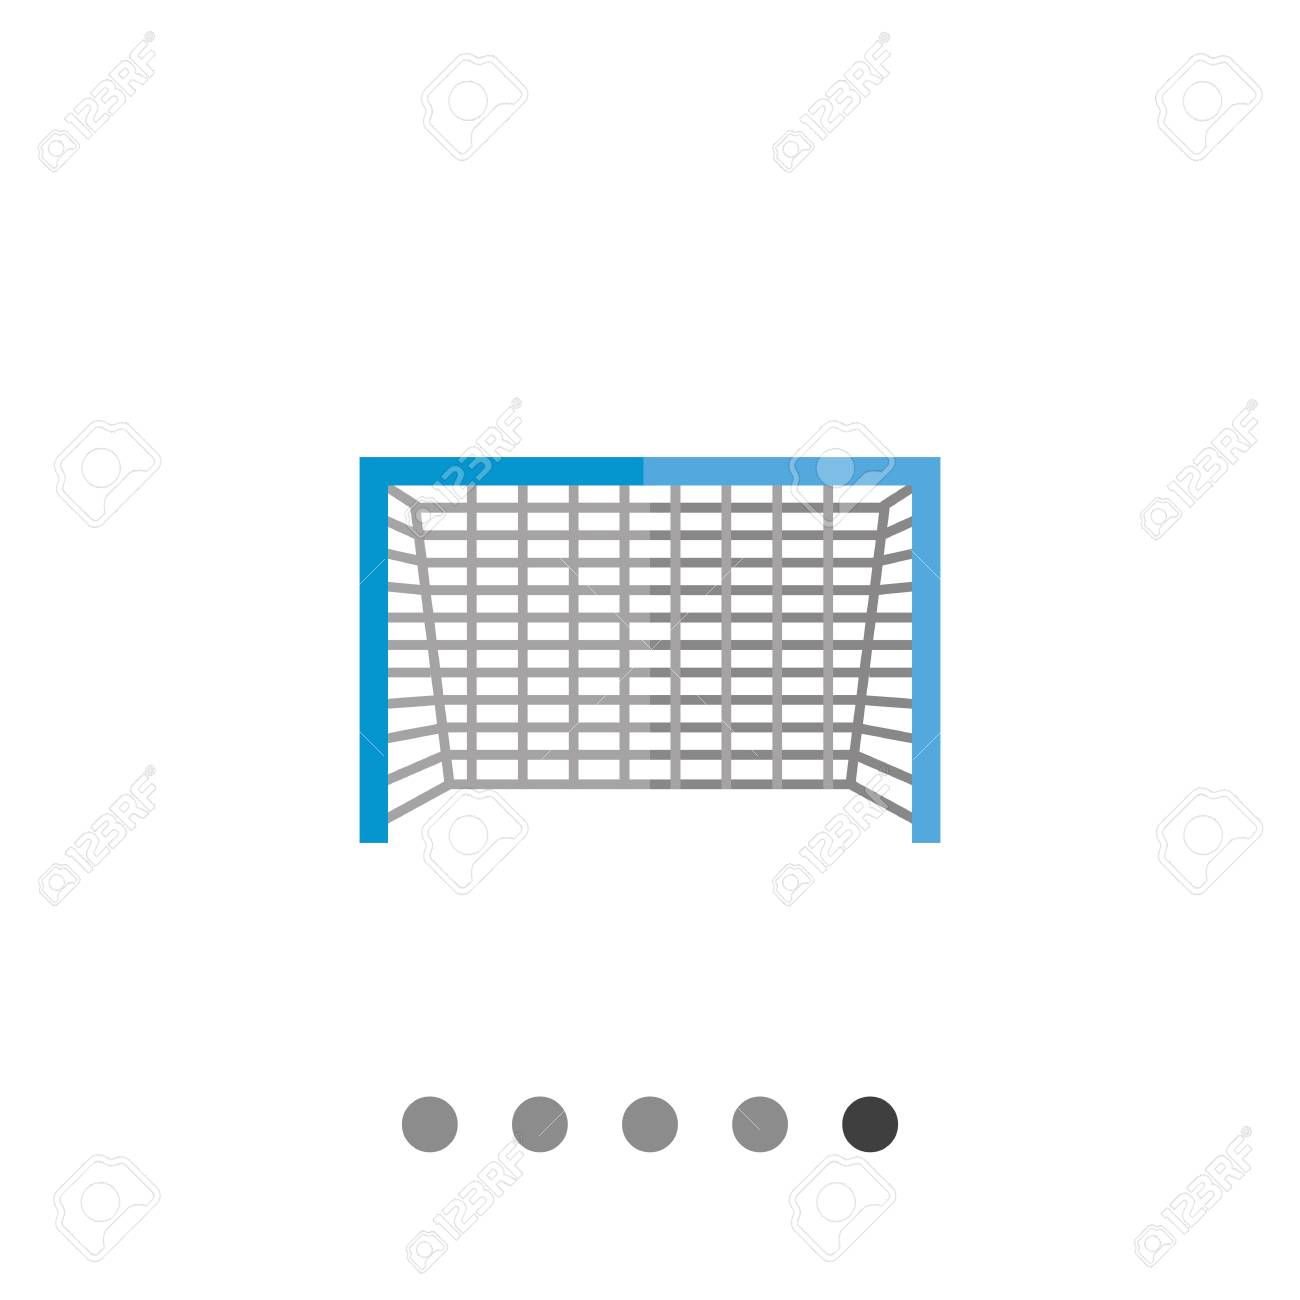 multicolored flat icon of soccer goal with blue frame and grey